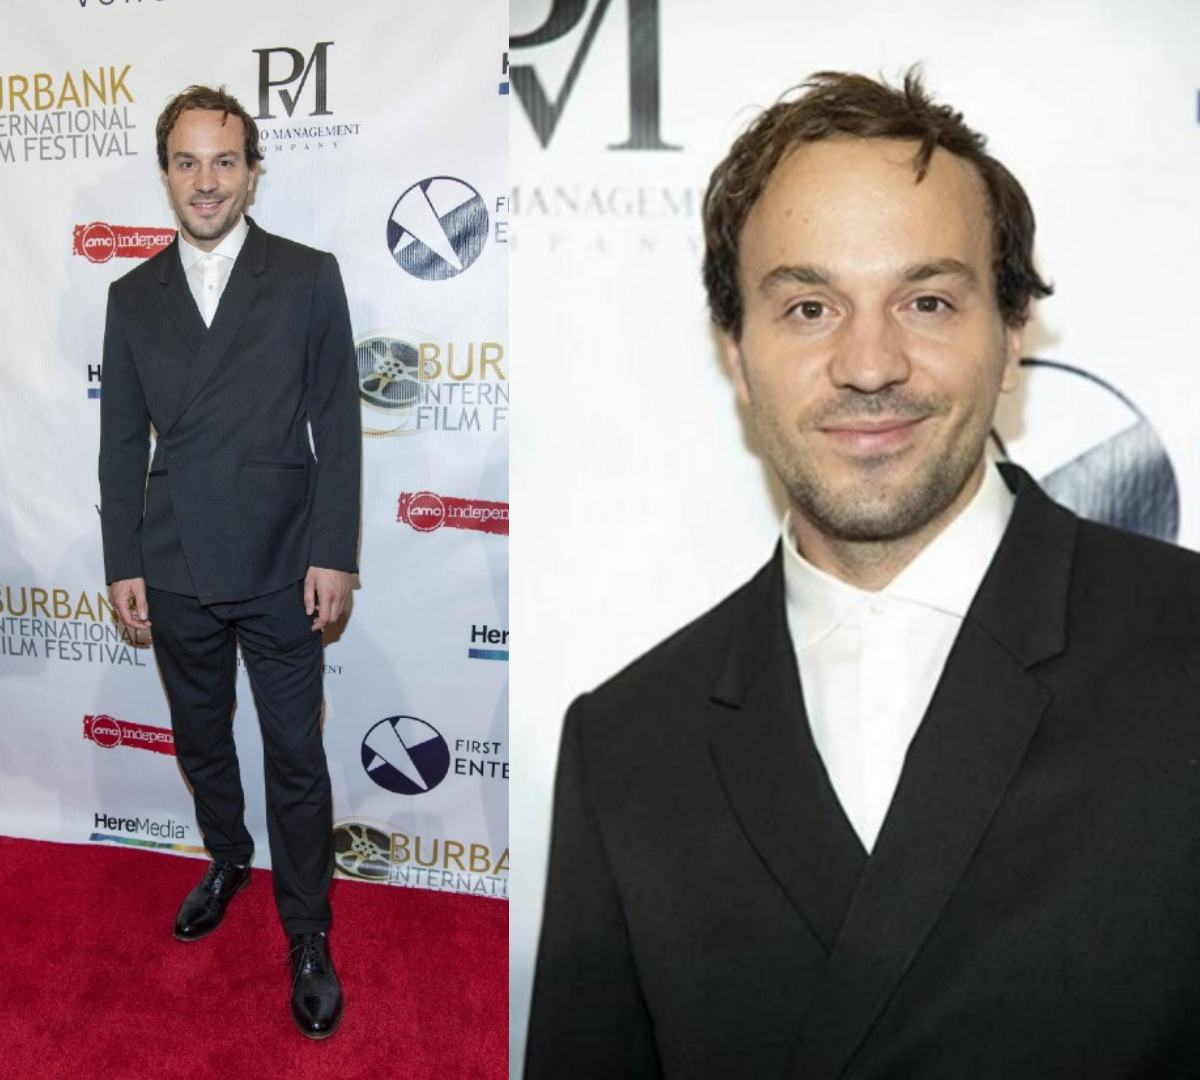 Hollywood's Latest News Official: FILIP SERTIC ATTENDS WORLD PREMIERE OF THIS GAME'S CALLED MURDER. Actor Filip Sertic Exclusive Film Premier Red Carpet Hollywood Event !